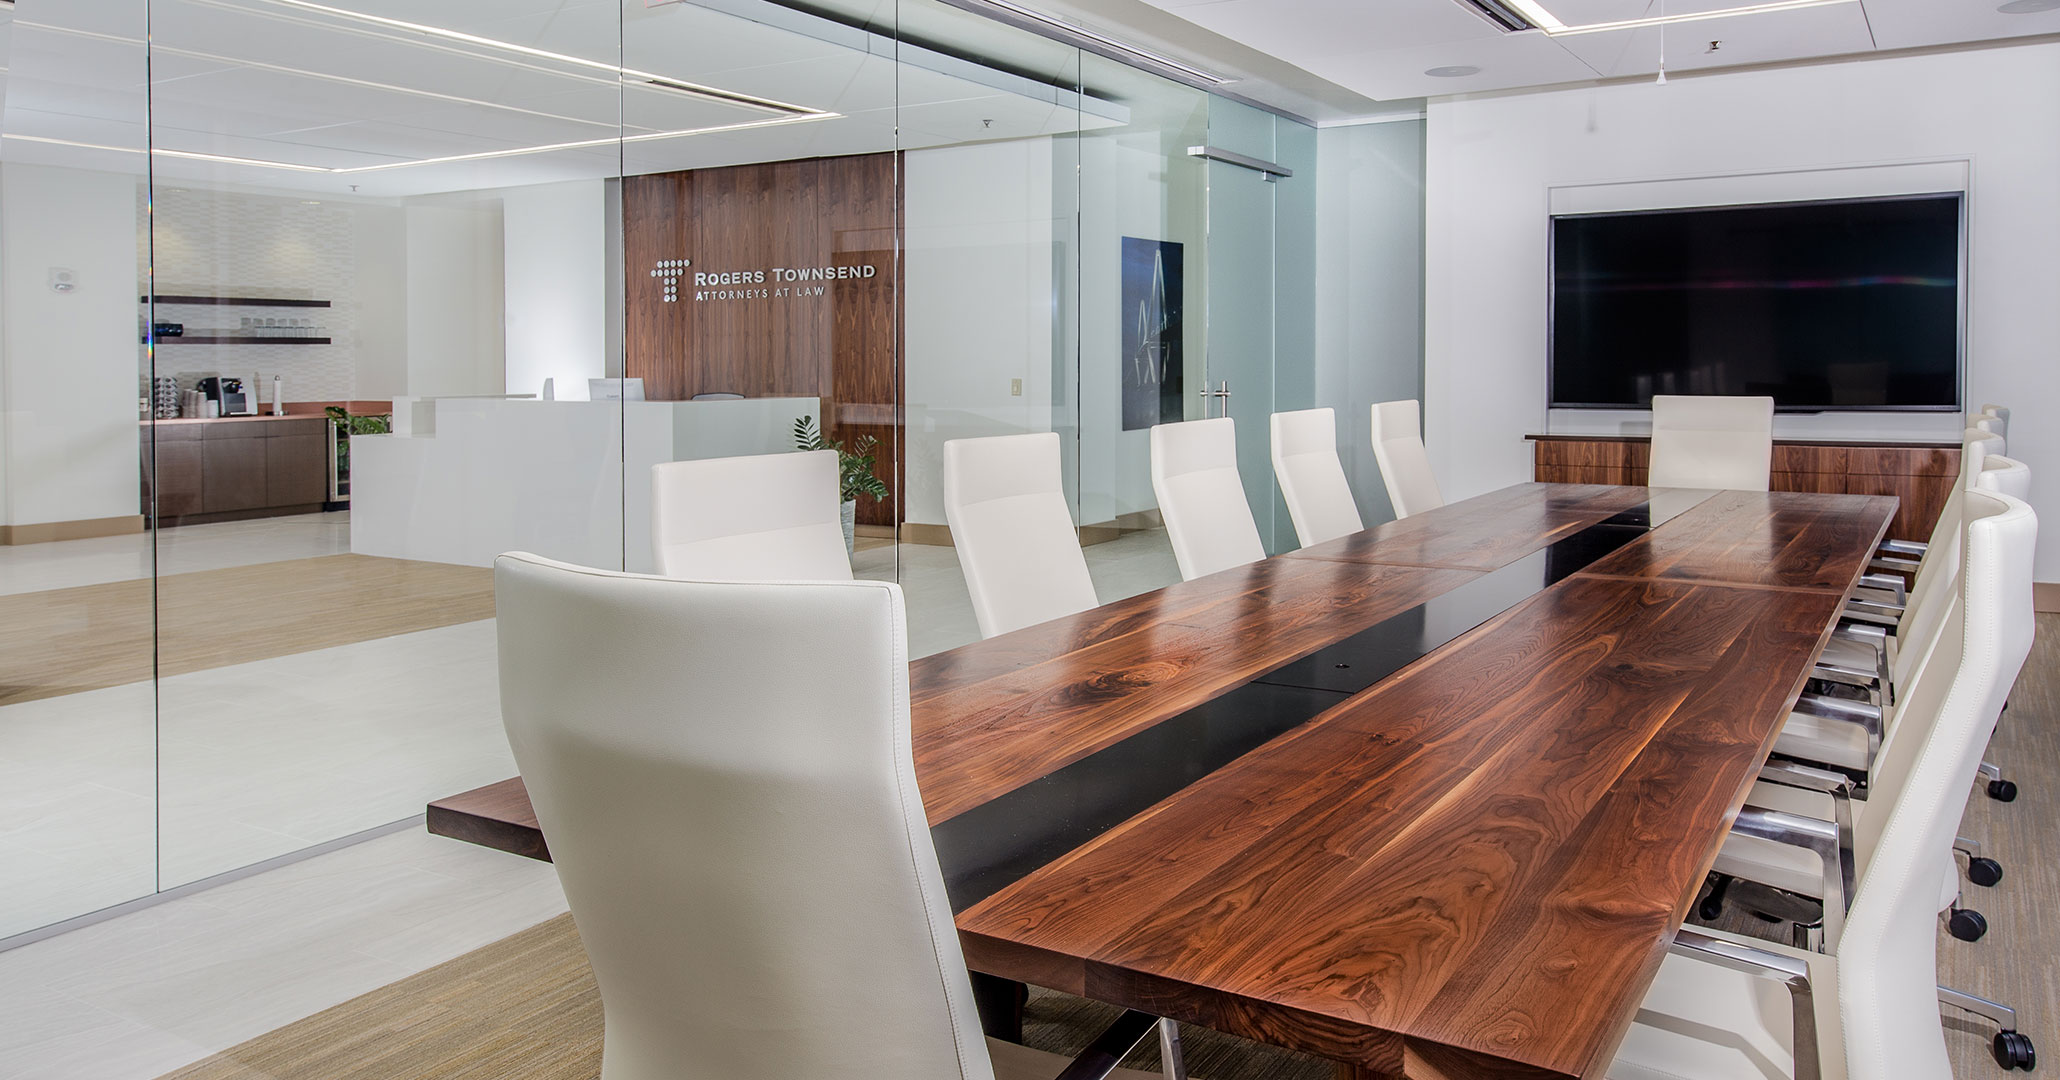 Boudreaux architects provided interior design services for Rogers Townsend Thomas Attorneys at Law for their modern office spaces.